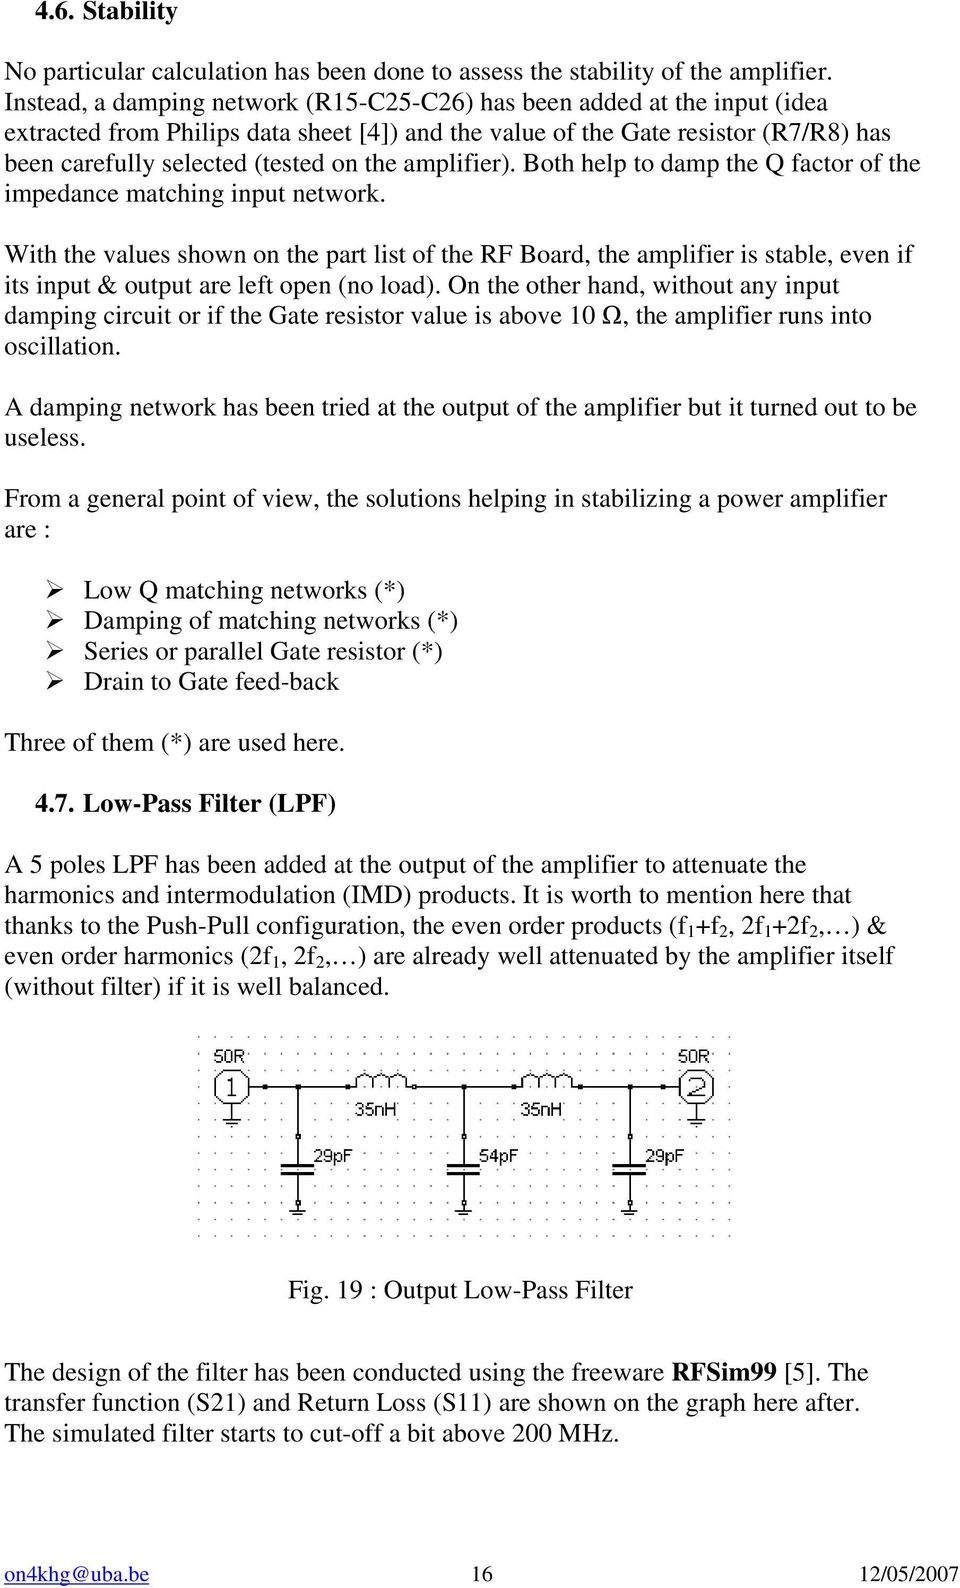 Design and building of a 300 W MOSFET Push-Pull Power Amplifier for